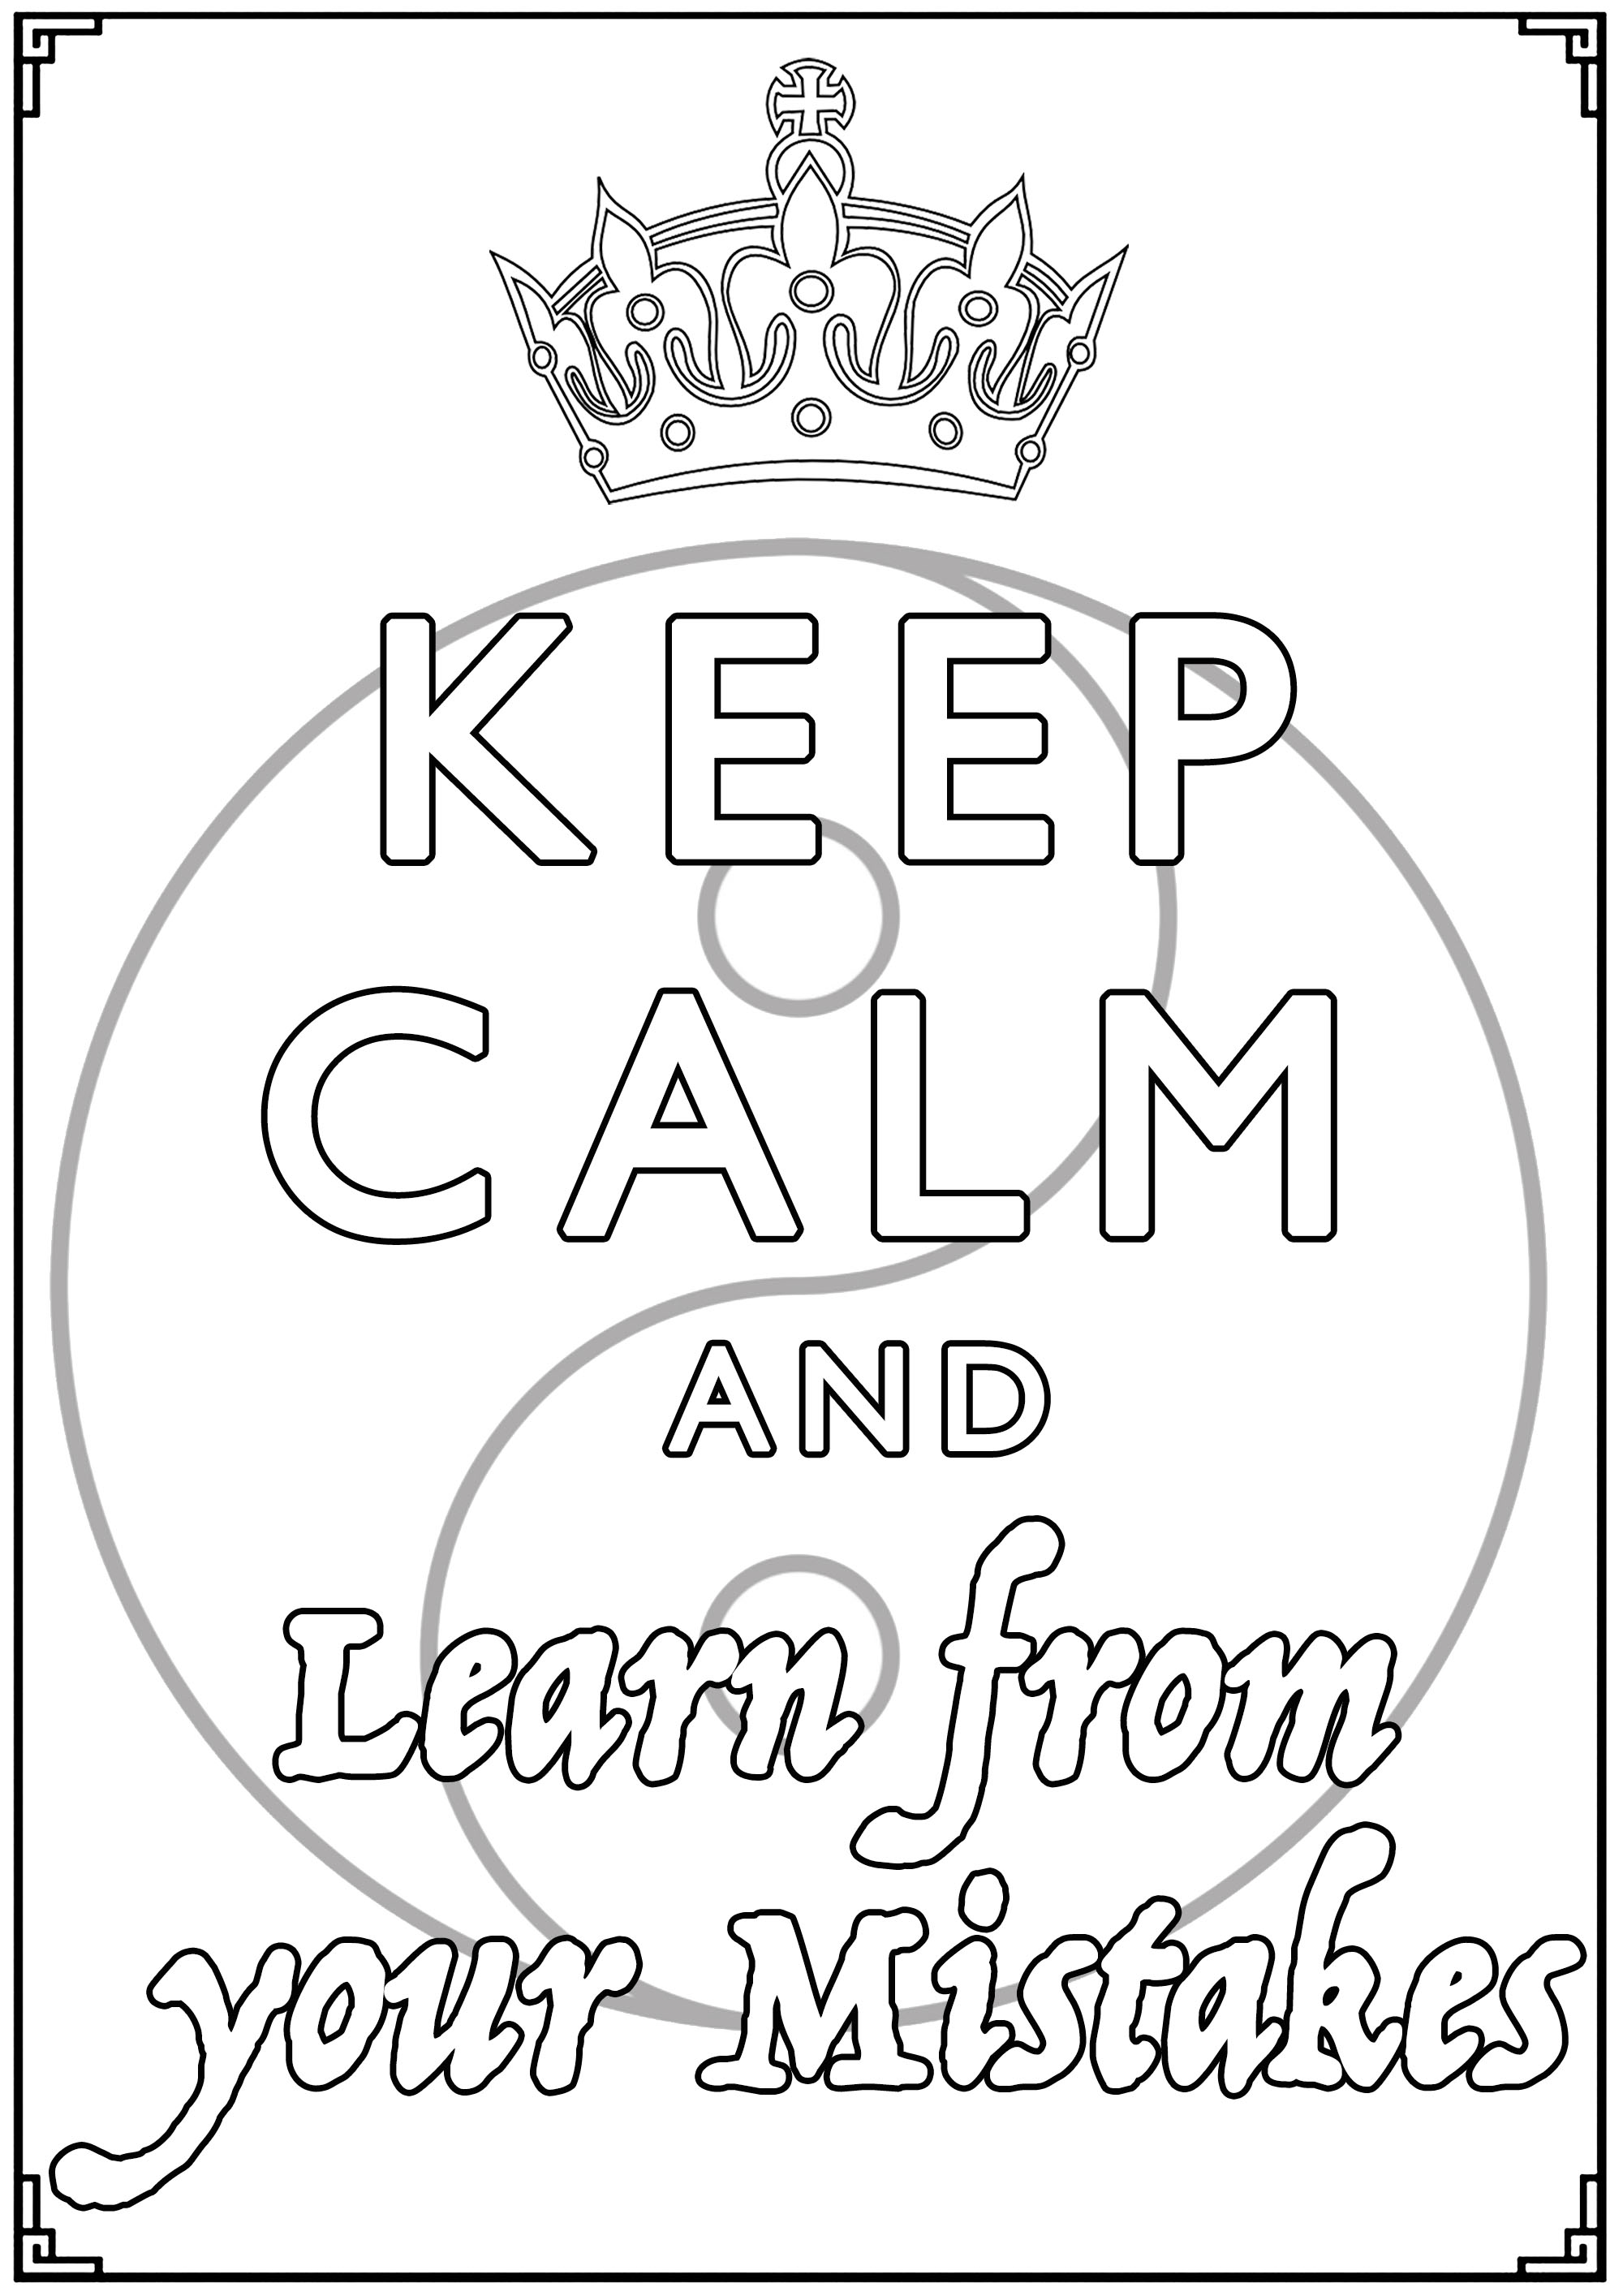 Keep Calm and Learn from your Mistakes : Yin & Yang symbol, and a very important message.